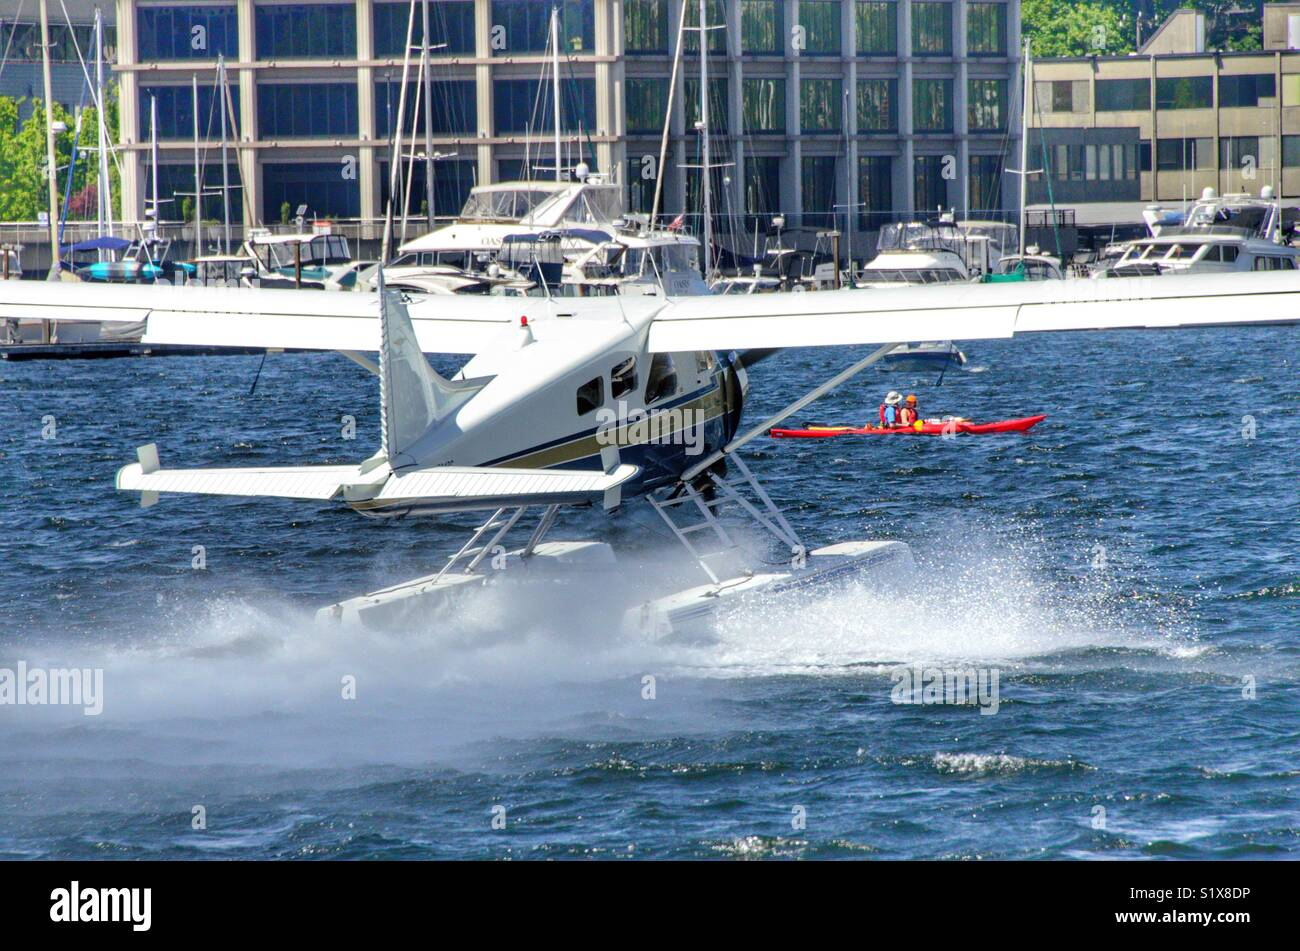 Kayaking in front of a float plane on Lake Union in Seattle Washington - Stock Image